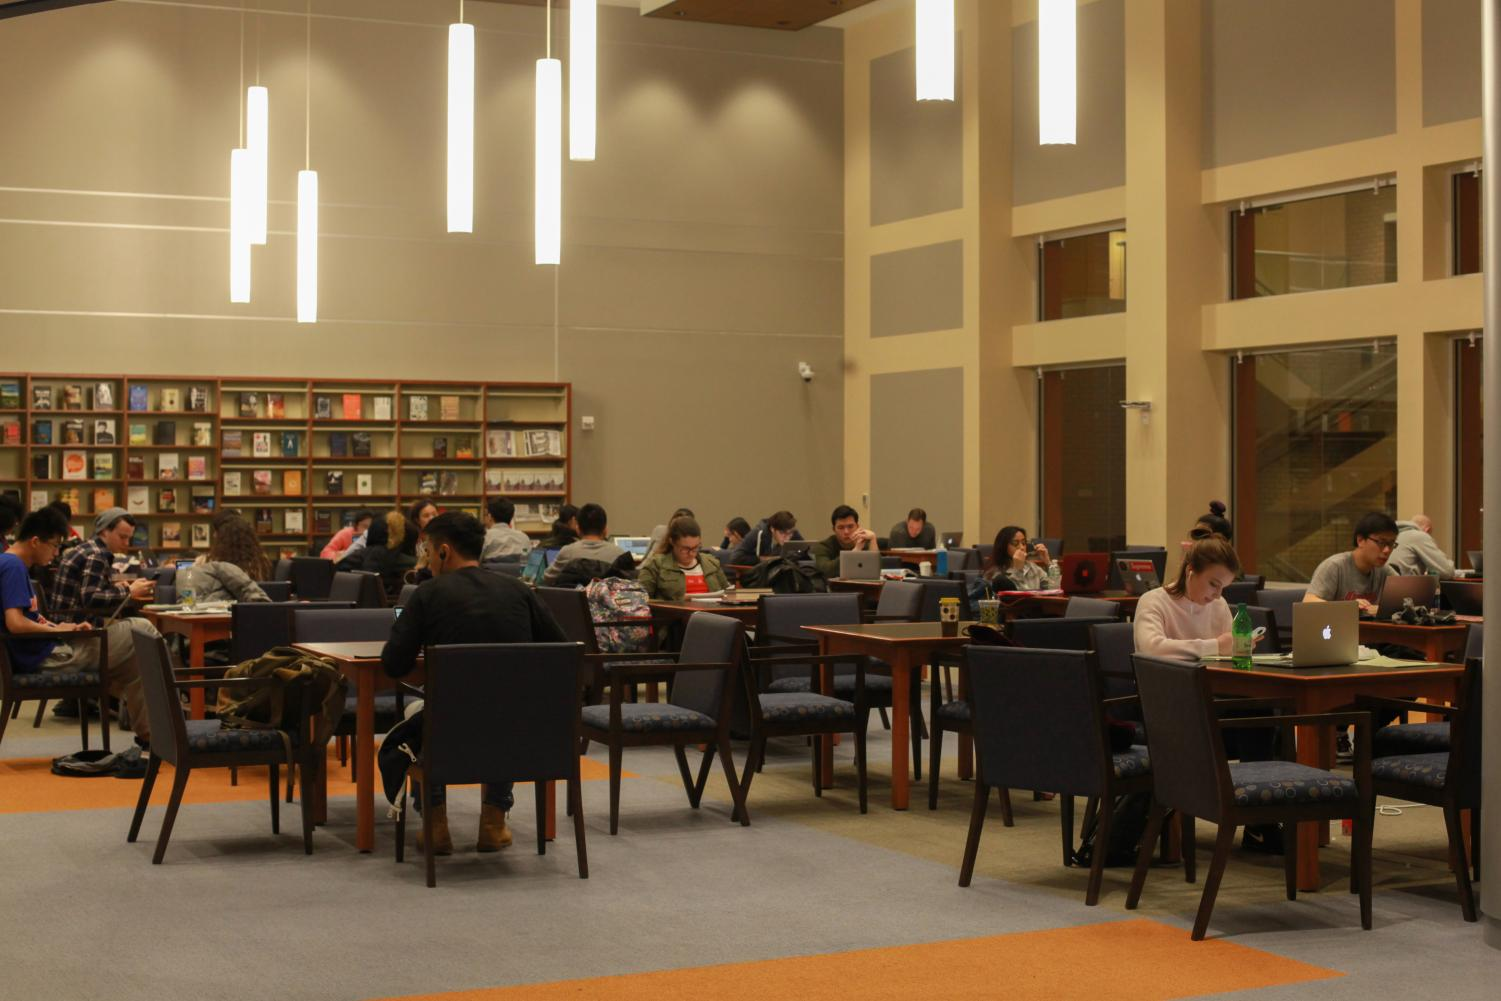 It wouldn't be finals season without Quinn Library being full of students getting some last minute studying in.